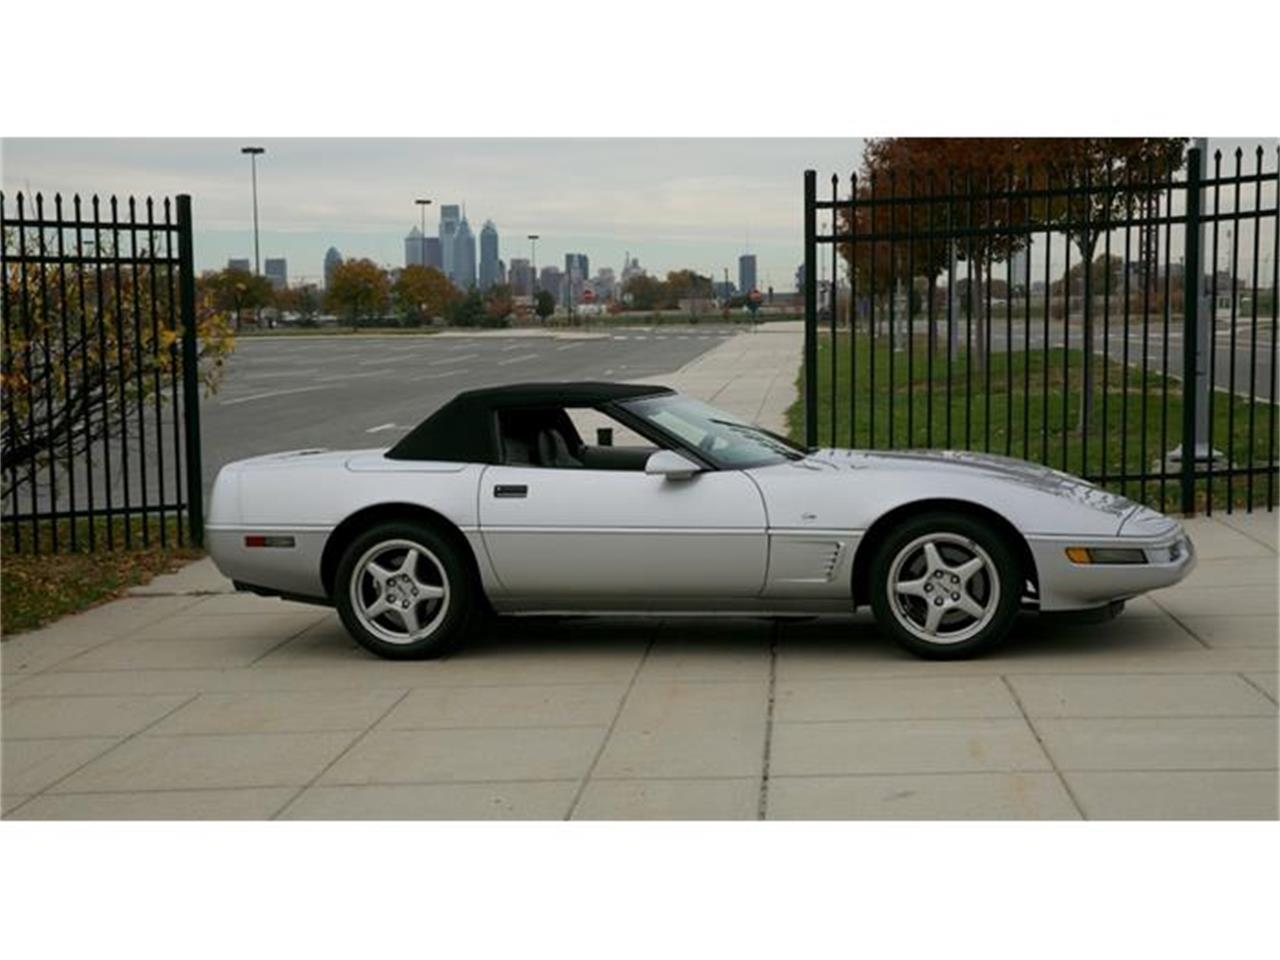 Large Picture of '96 Corvette located in New Jersey - $25,900.00 - G17I